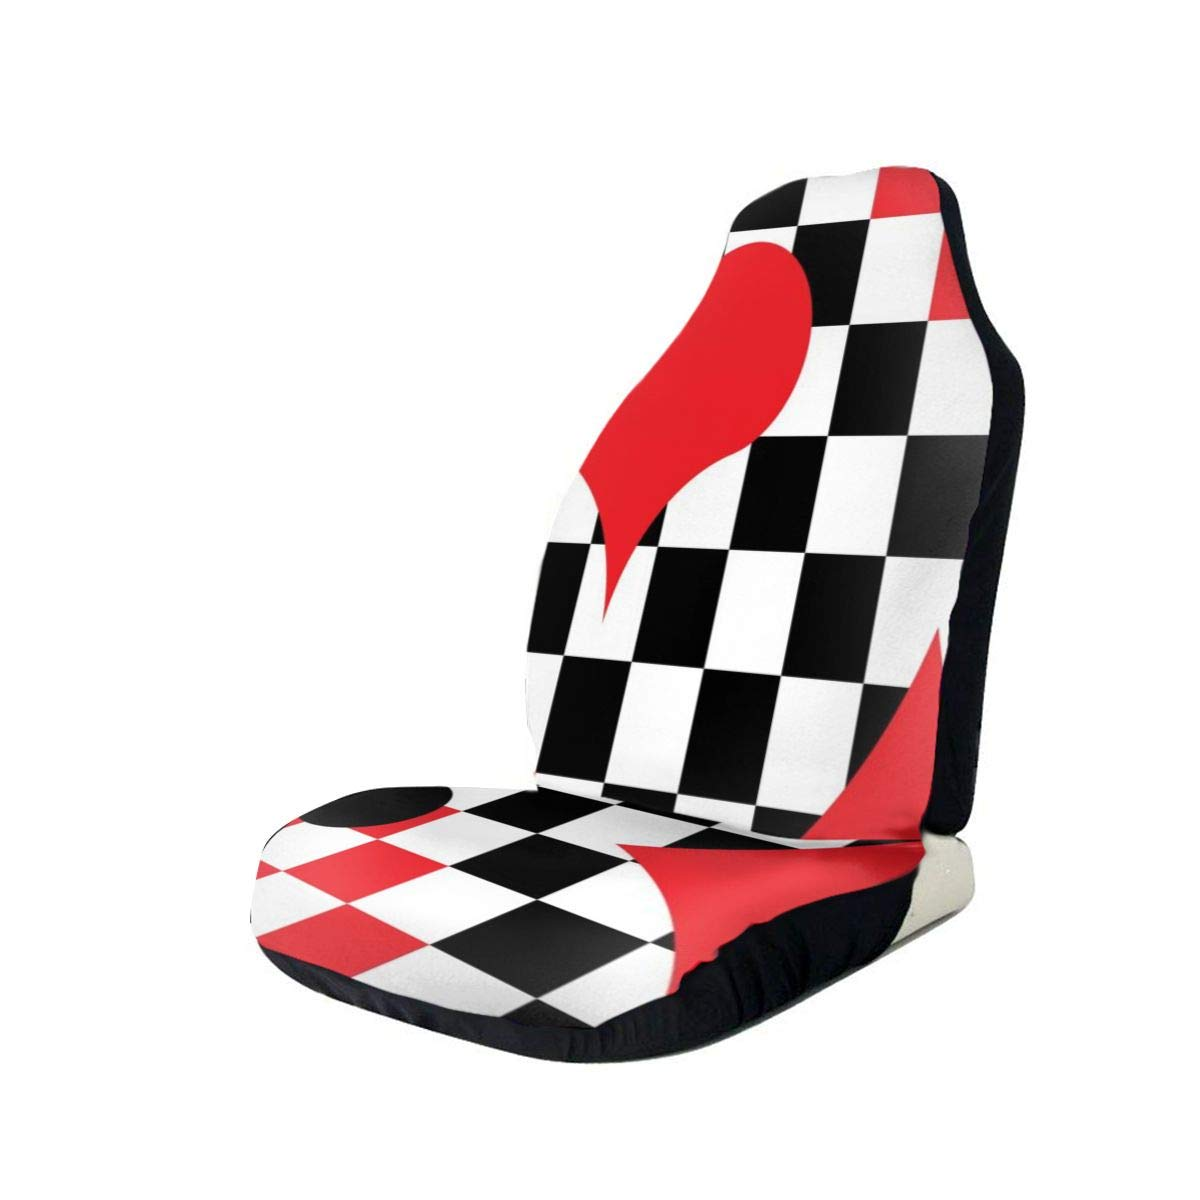 Car Seat Cover, Universal Car Seat Covers, Unique Chess and Cards Seat Covers Universal for Front Seat, Automobile Seats Protector Fits Most Car Trucks SUV